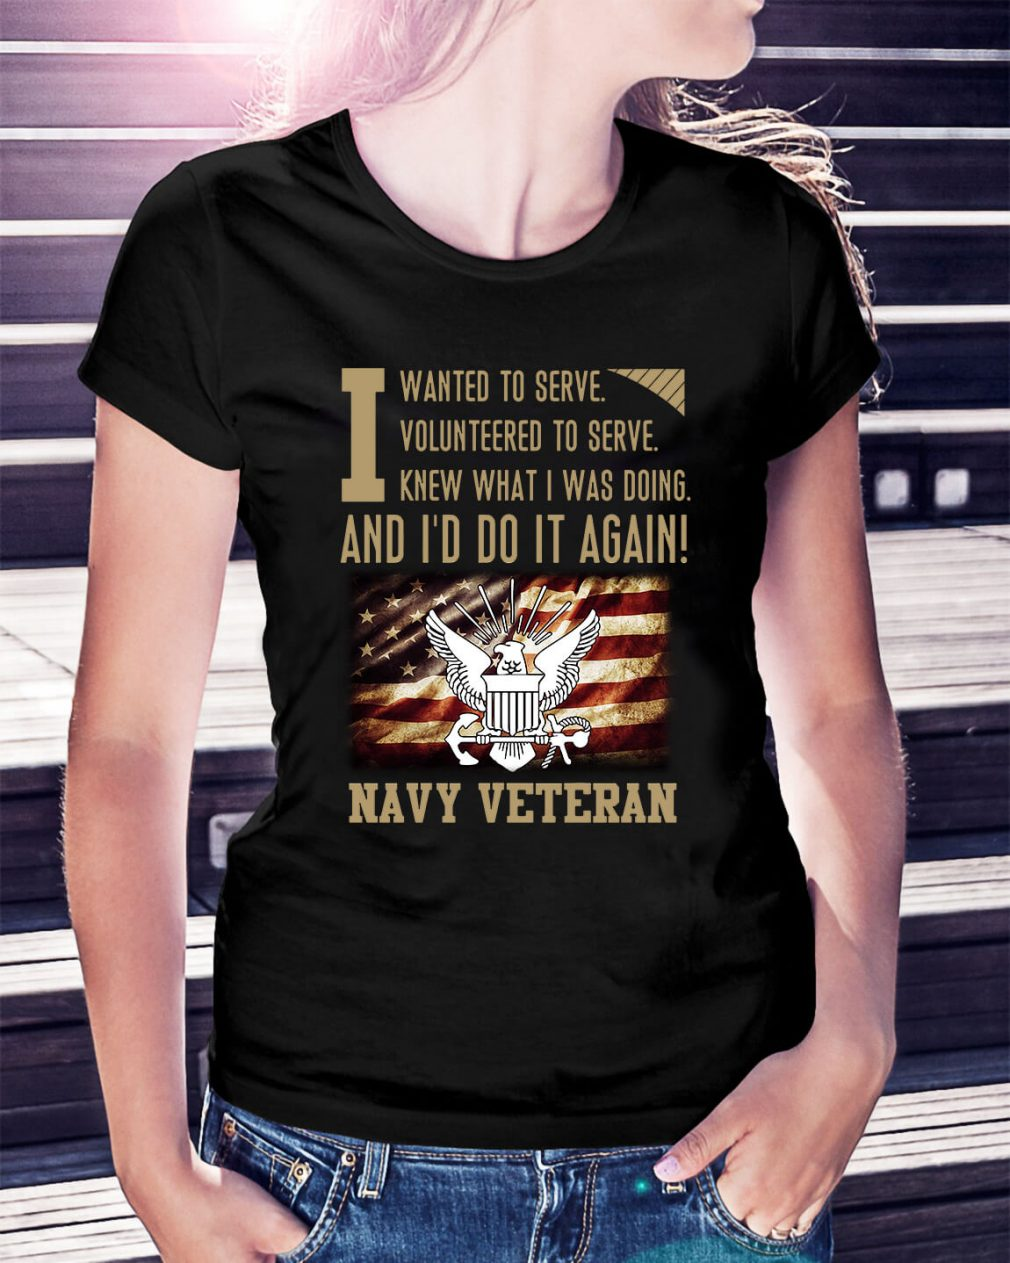 To serve knew what I was doing and I'd do it again Navy Veteran Ladies Tee